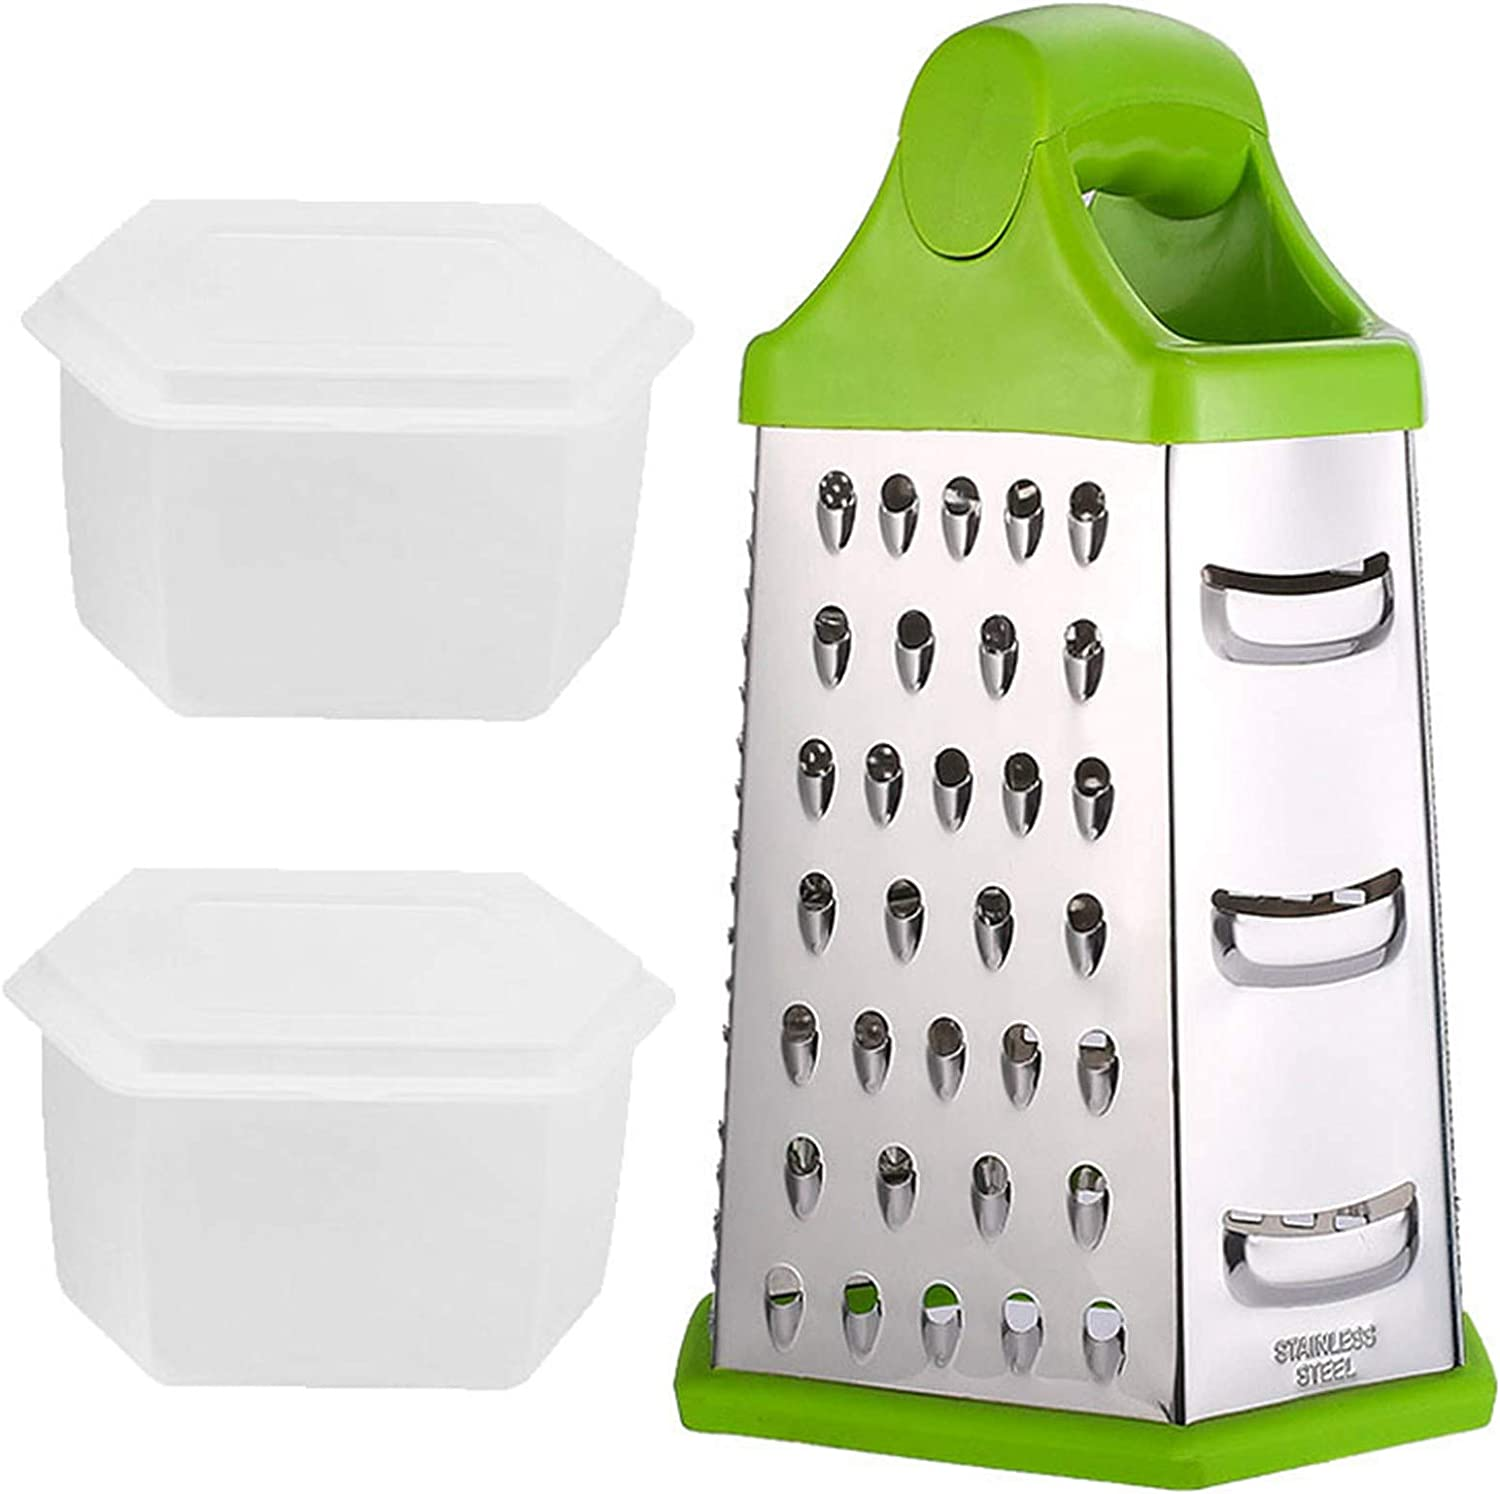 6-Sided Stainless Steel Box Cheese Grater Slicer for Cheeses Shredder Vegetables with Soft Grip Handle and Non-Slip Base, with 2 Attachable Storage Containers(9 inches)